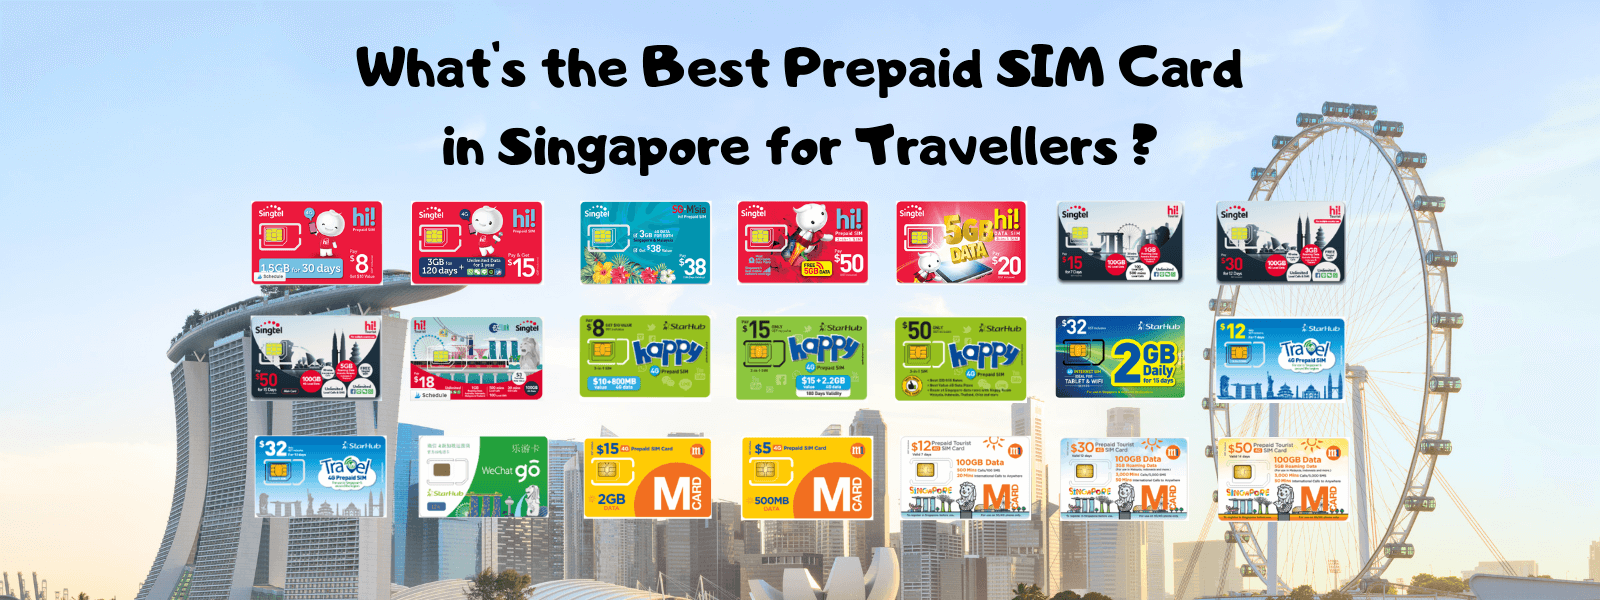 What's the Best Prepaid SIM Card in Singapore for Travellers